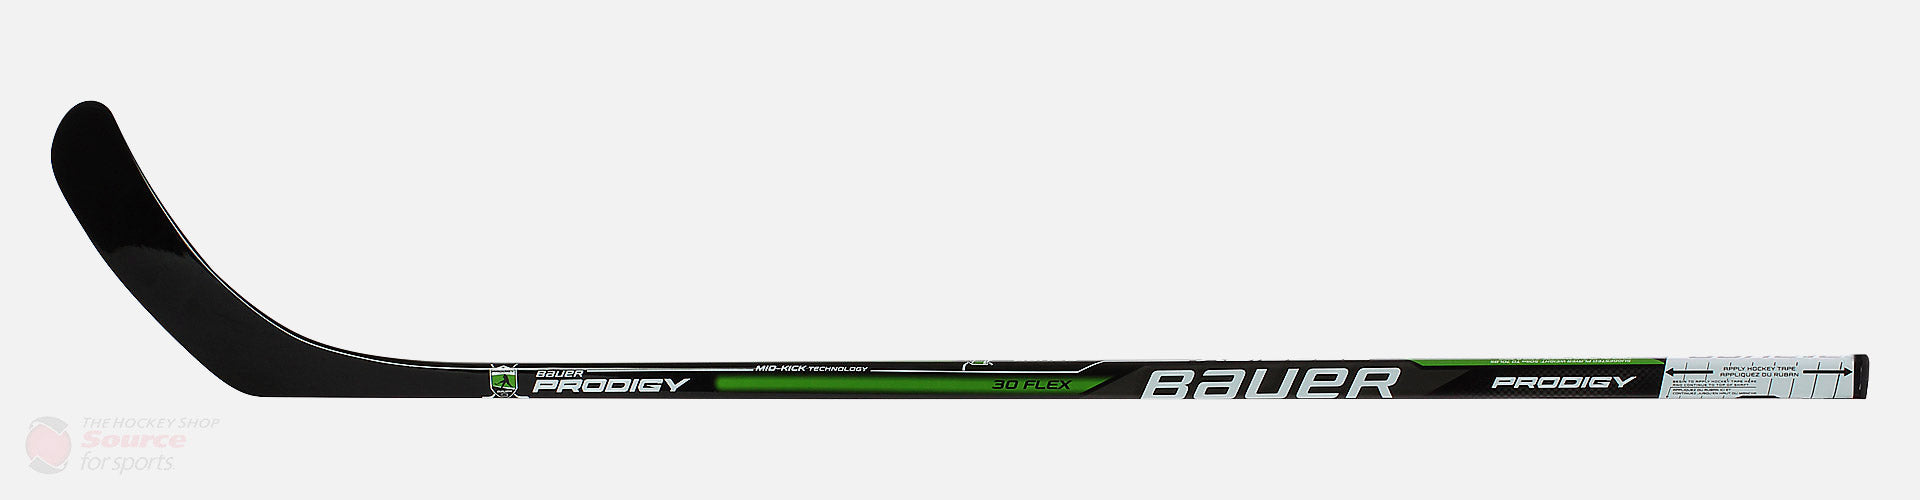 Bauer Prodigy Youth Hockey Stick - 42